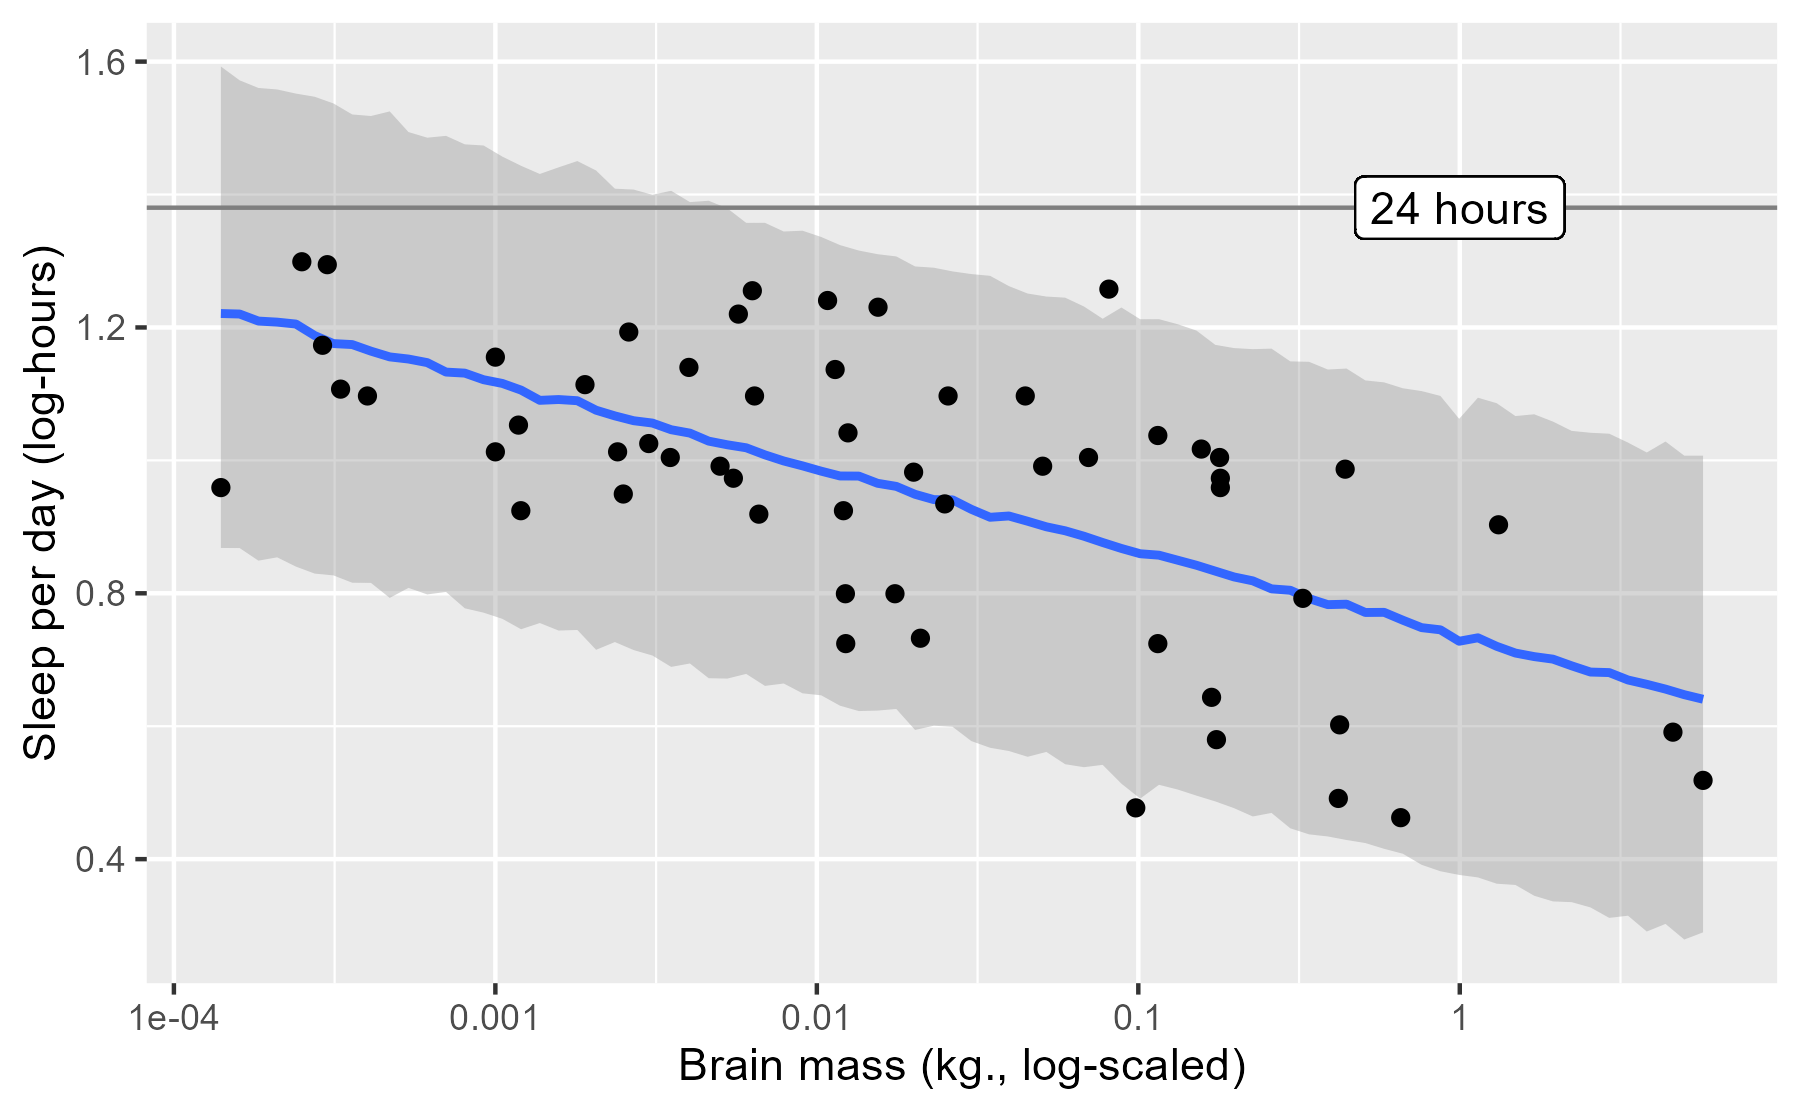 Previous plot updated to include a line indicating 24 hours. Same of the 95% interval goes above the line.